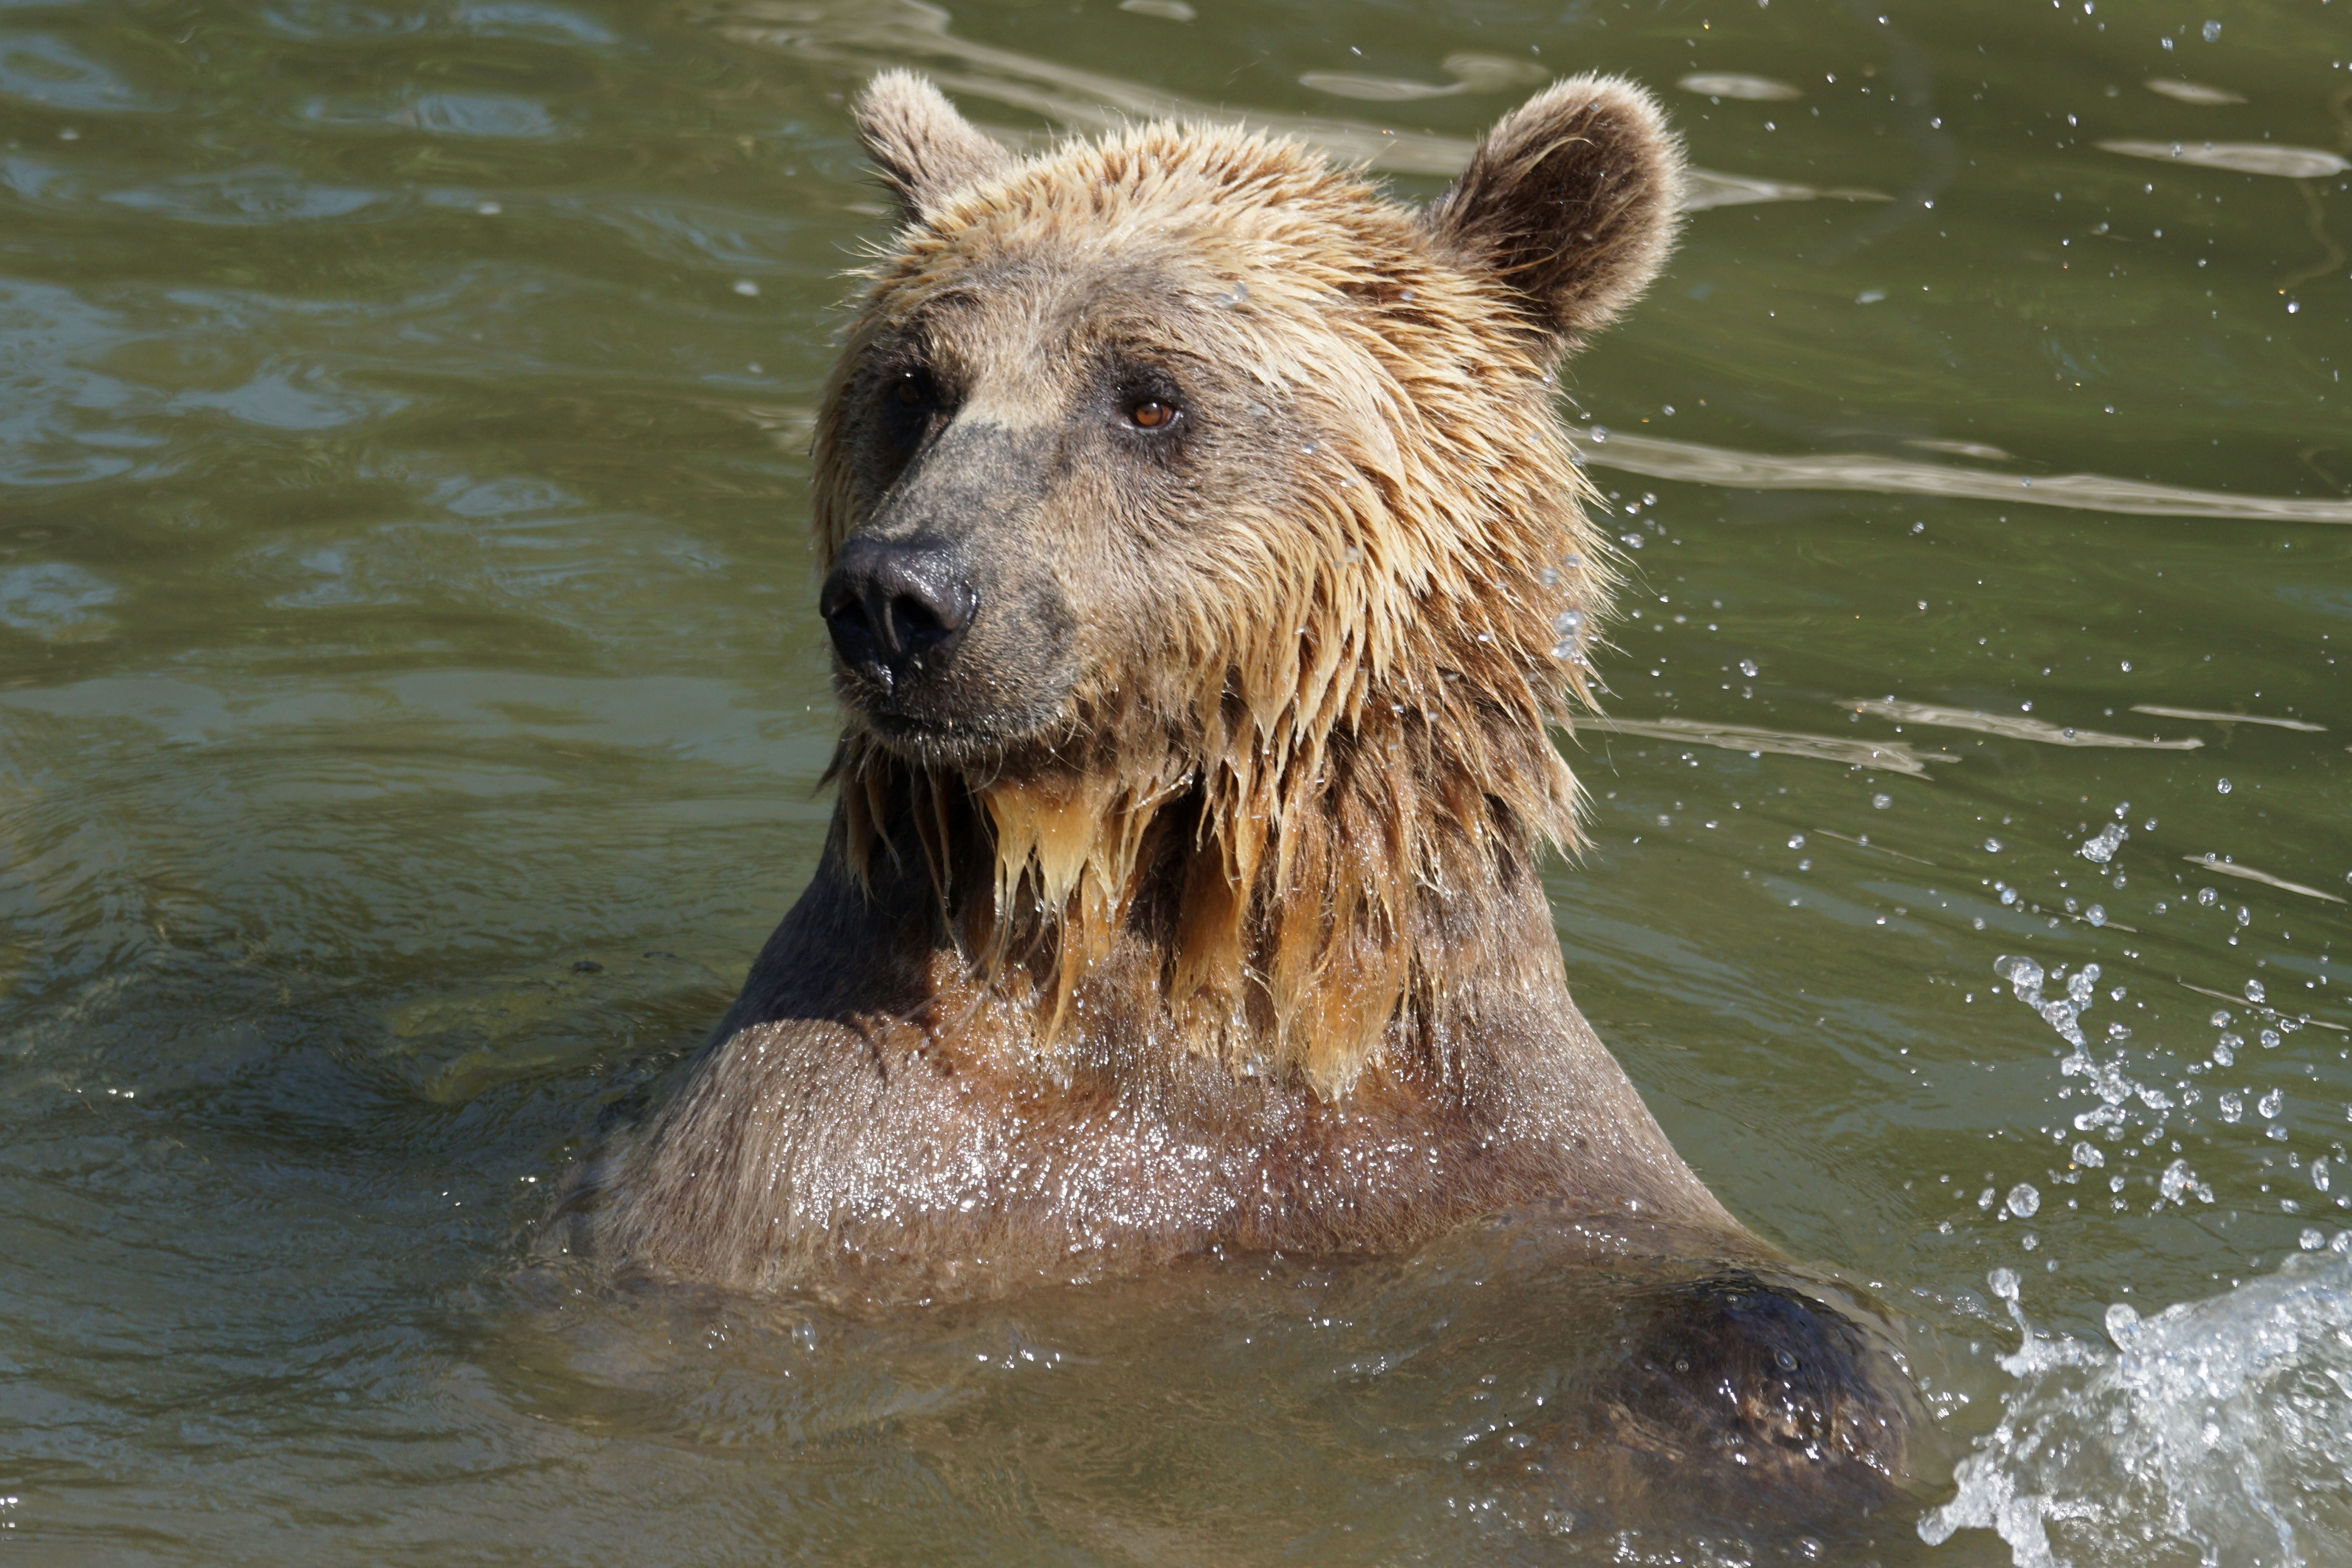 Free picture: brown bear, grizzly, wildlife, water, nature